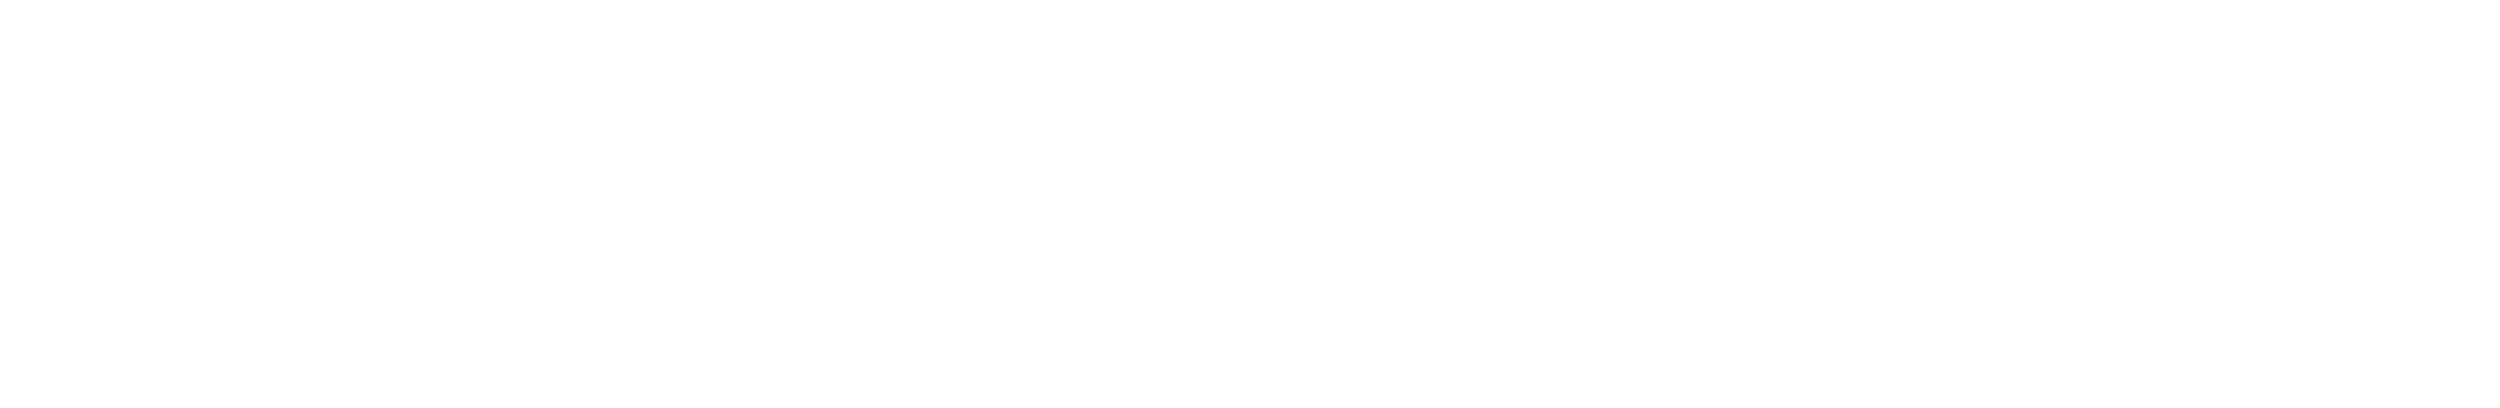 Typography@2x.png